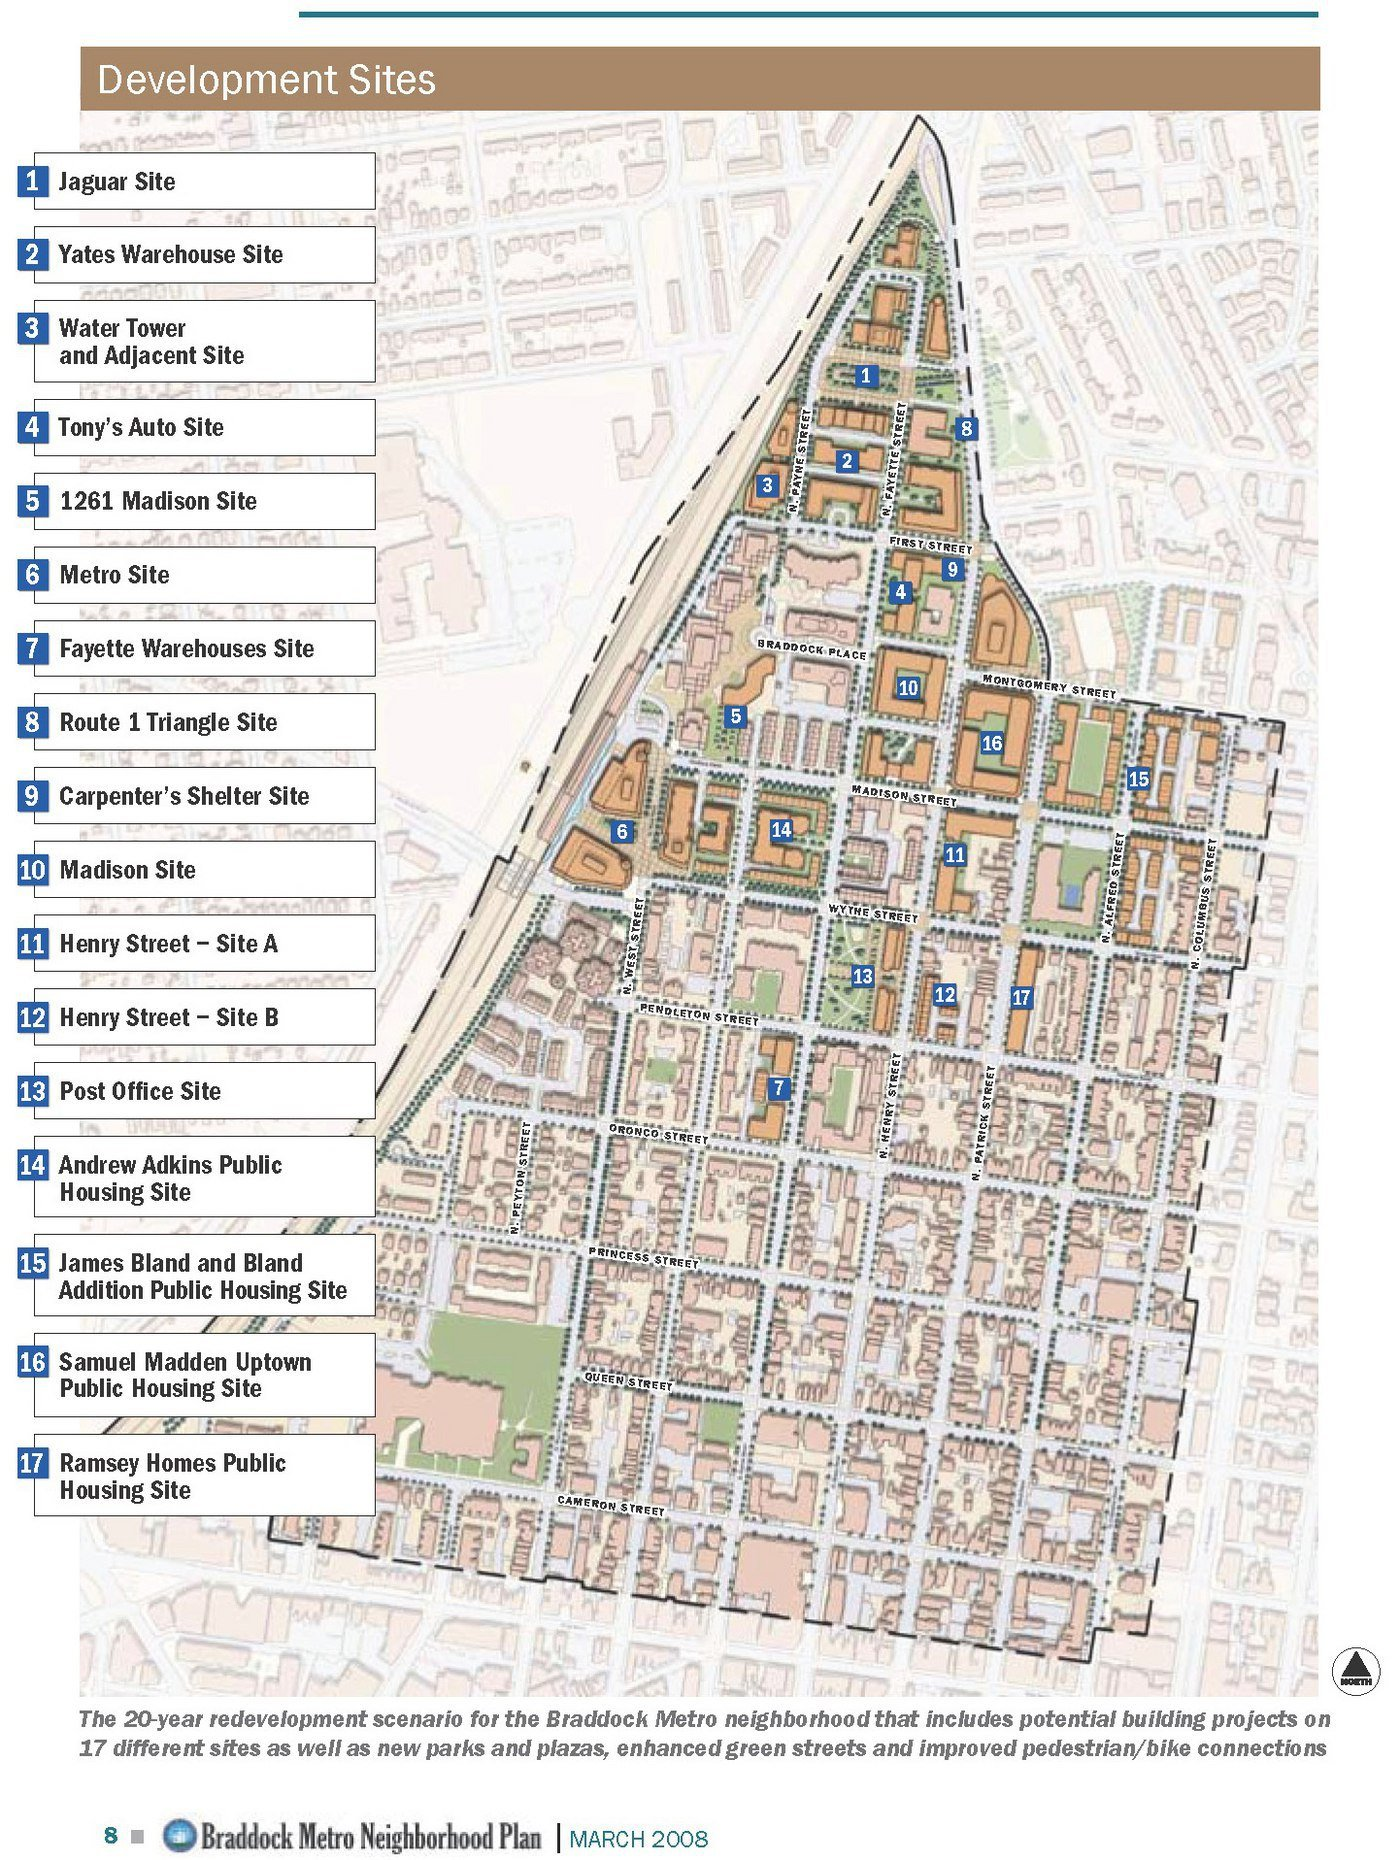 Braddock Metro Plan by the City Planning Office